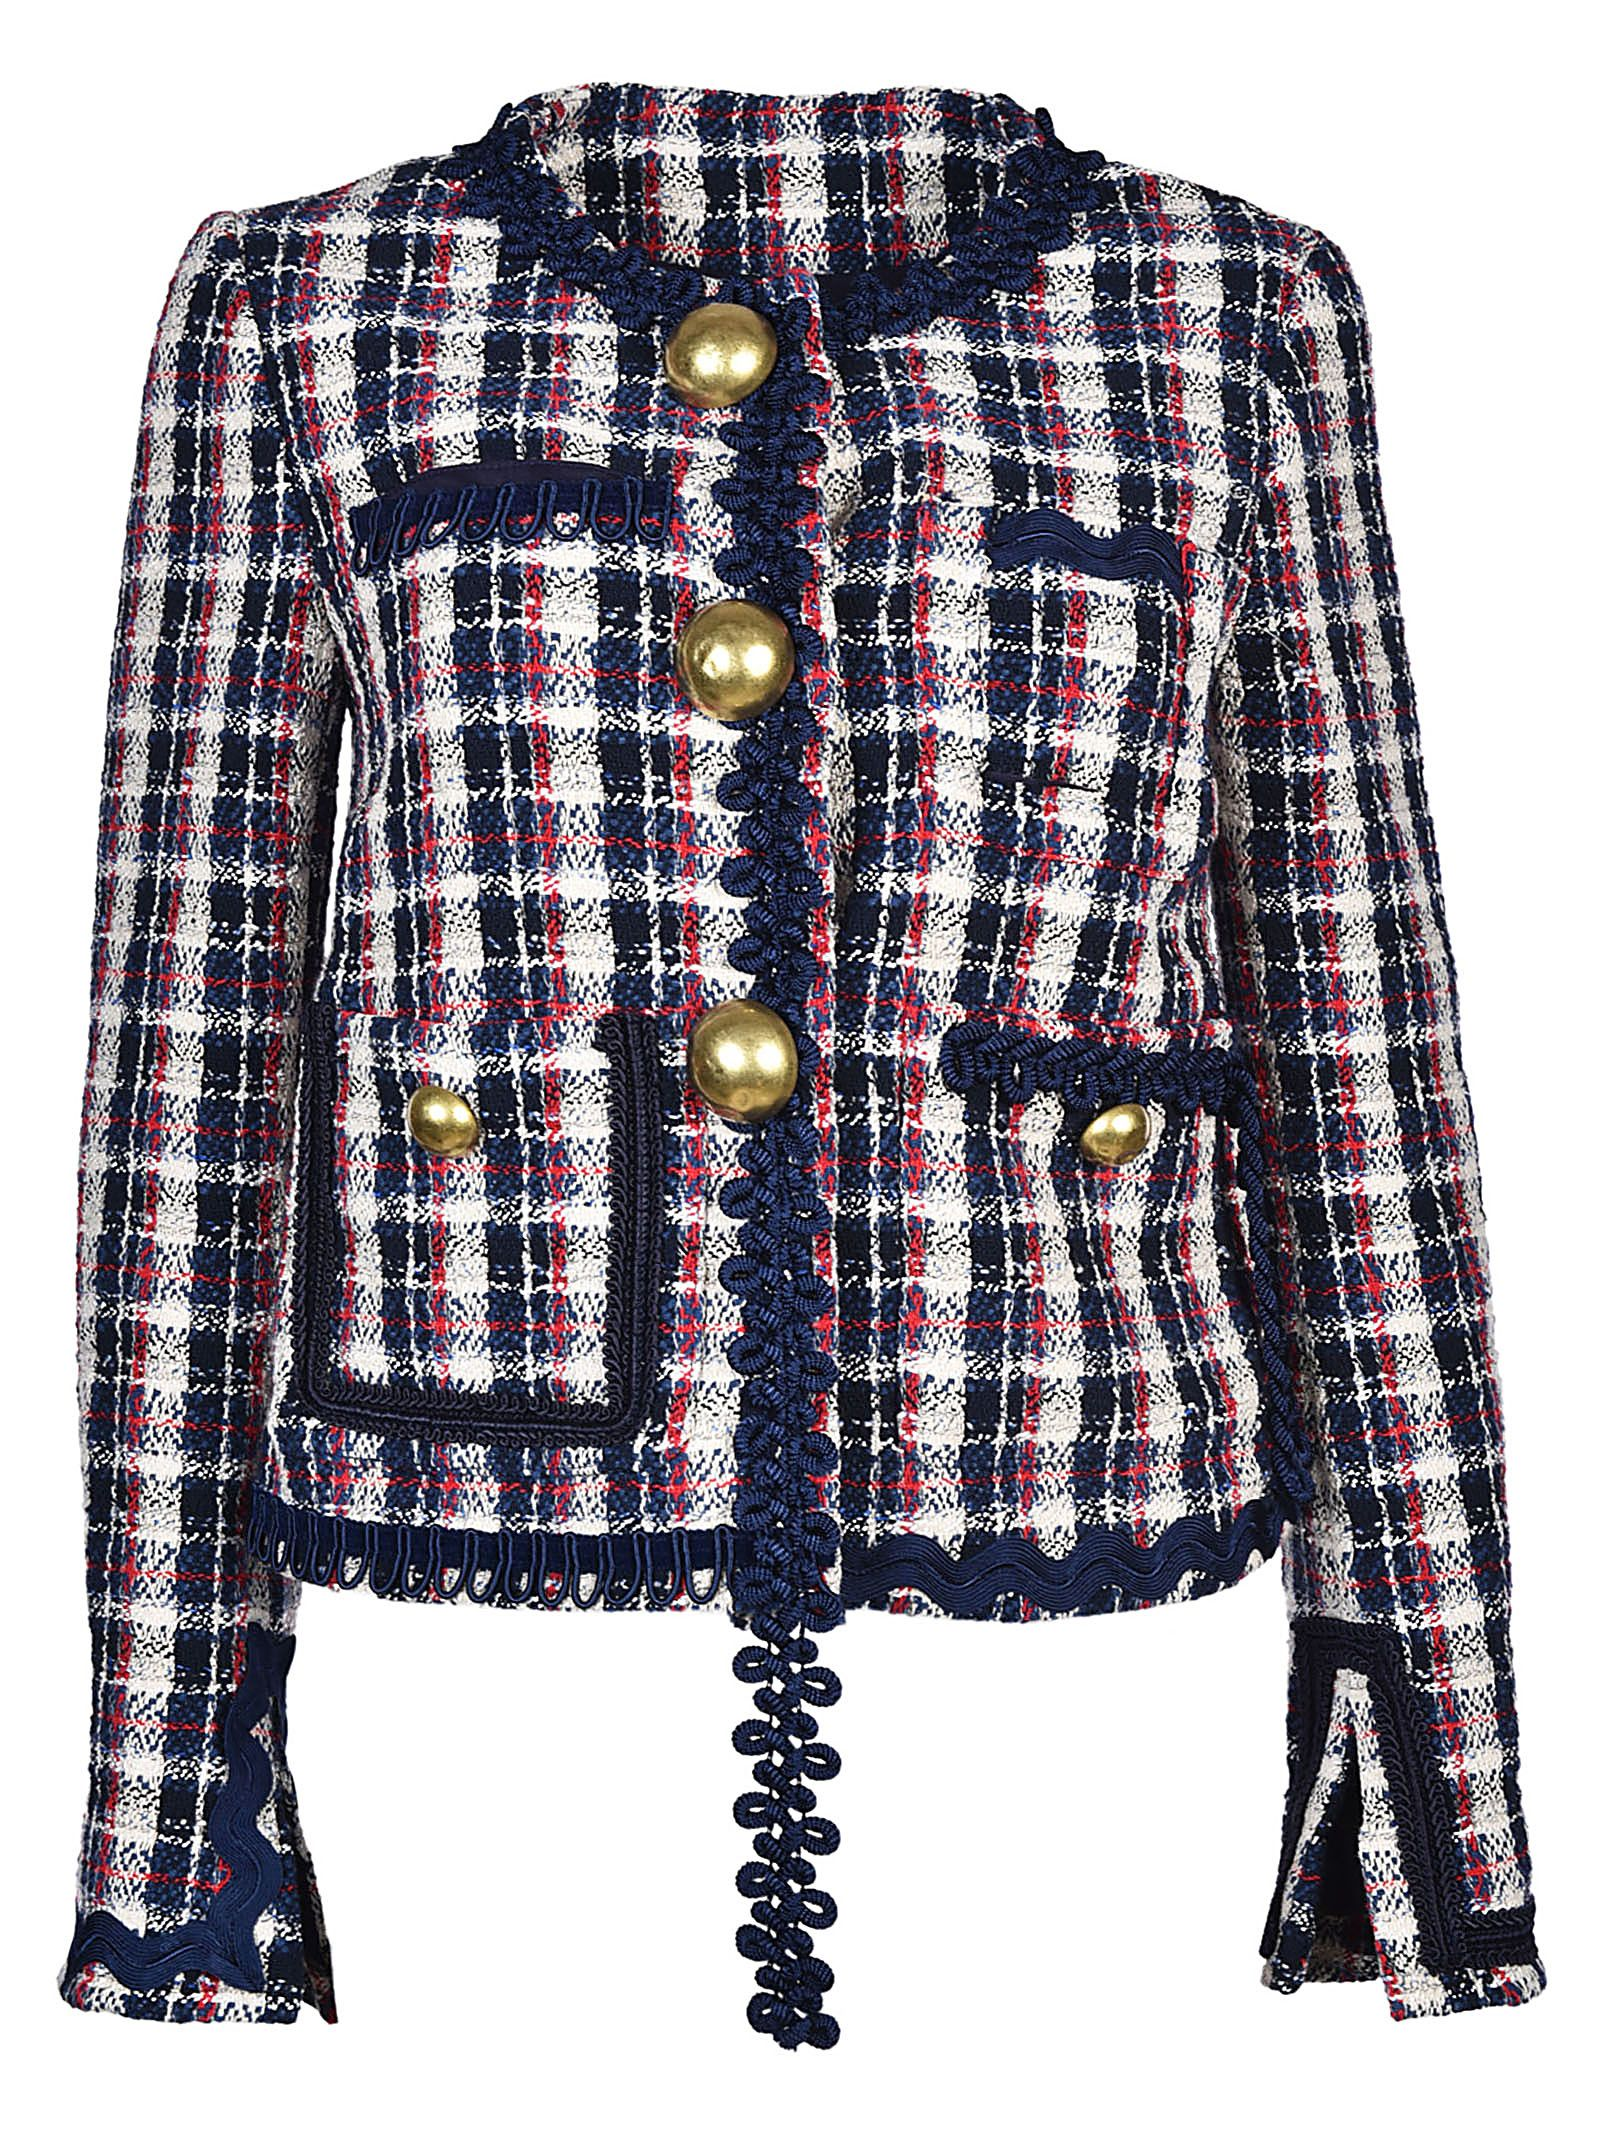 Erika Cavallini Semi-Couture Checked Jacket